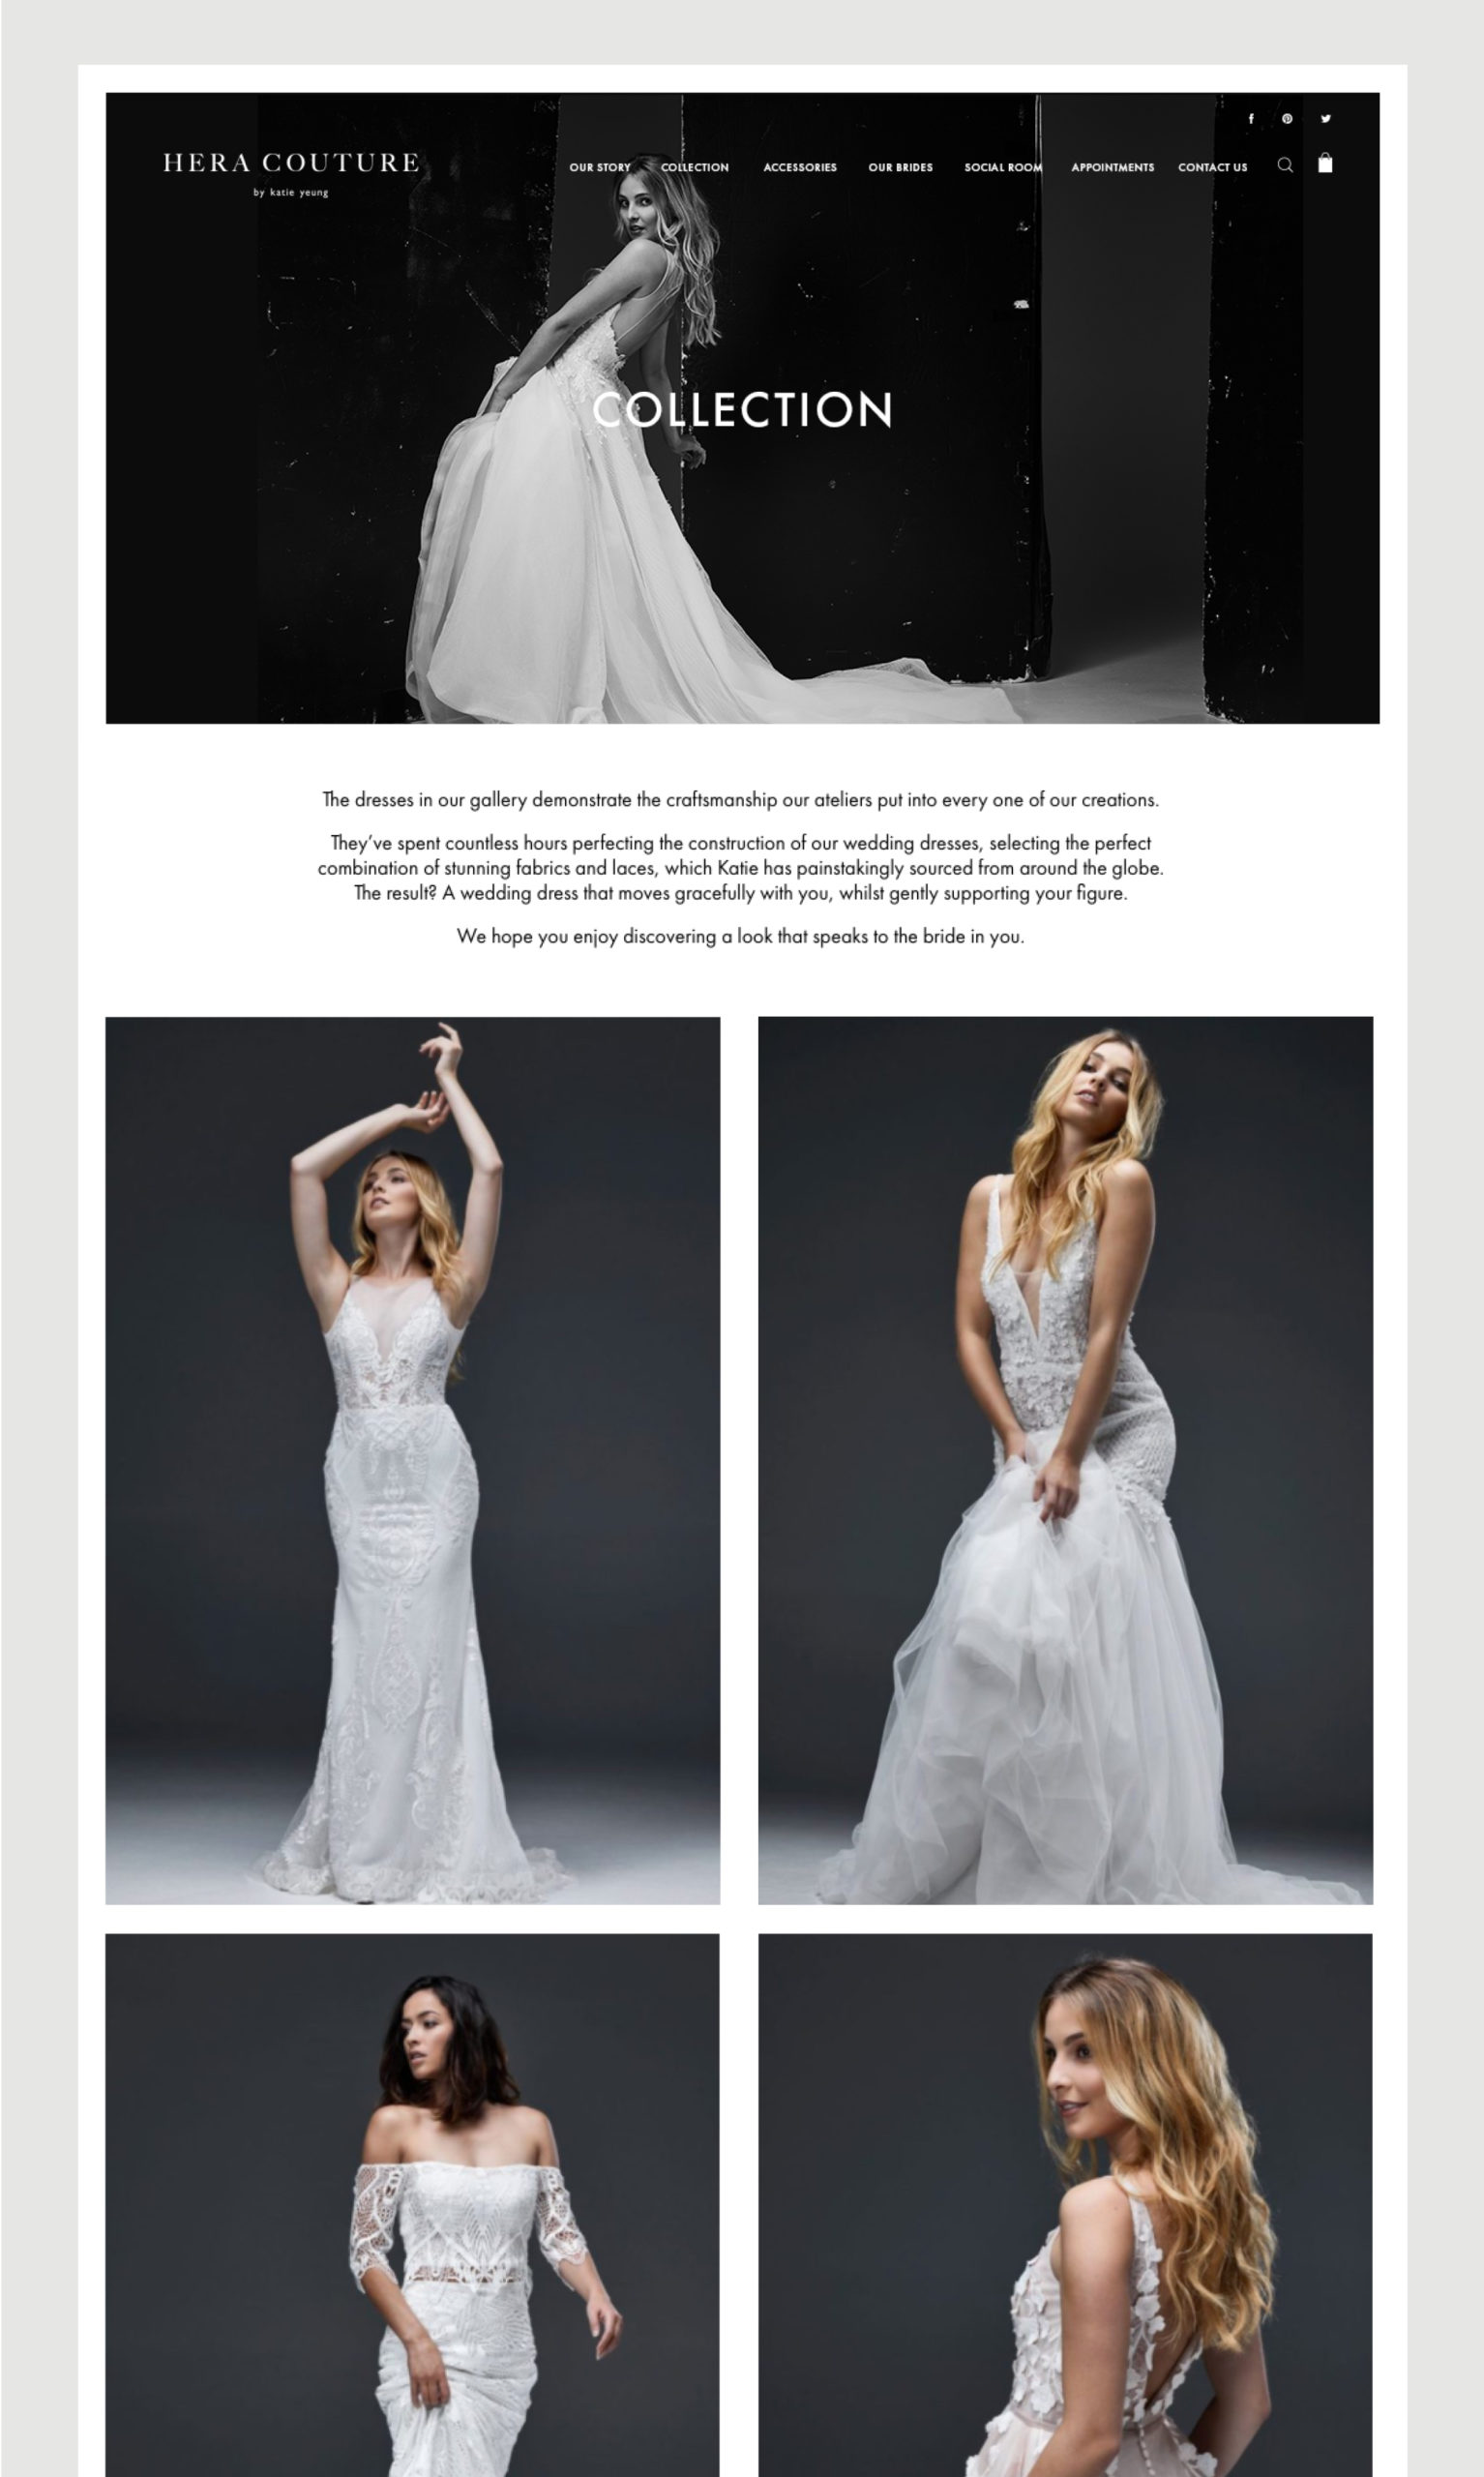 Hera Couture Website Collection Gallery – shows series of 4 feminine gown images